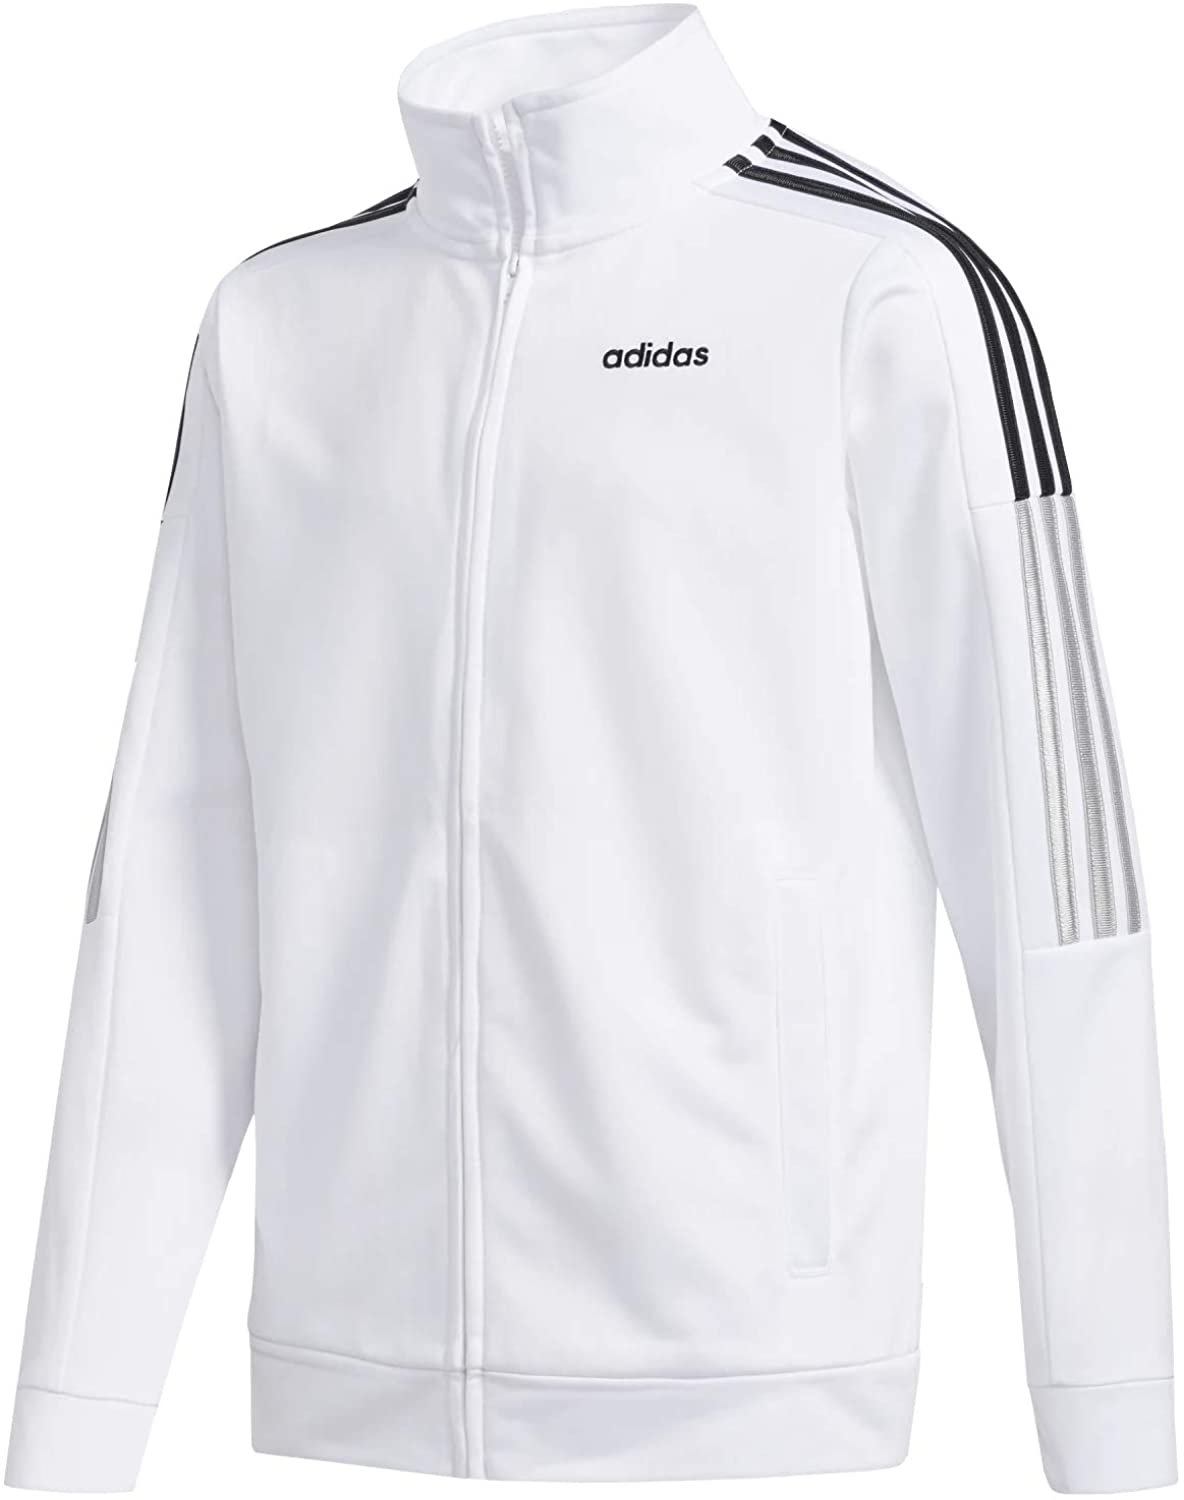 adidas boys Tricot Active Track Warm-up Jacket